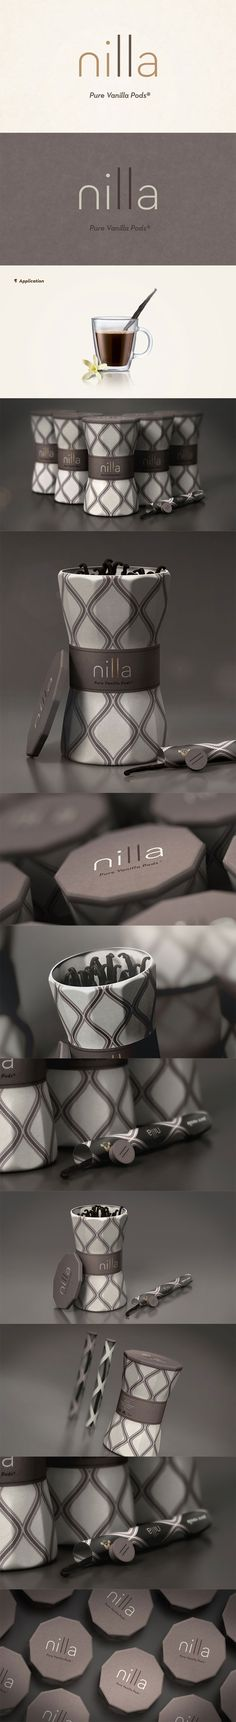 Nilla | #stationary #corporate #design #corporatedesign #logo #identity #branding #marketing <<< repinned by an #advertising agency from #Hamburg / #Germany - www.BlickeDeeler.de